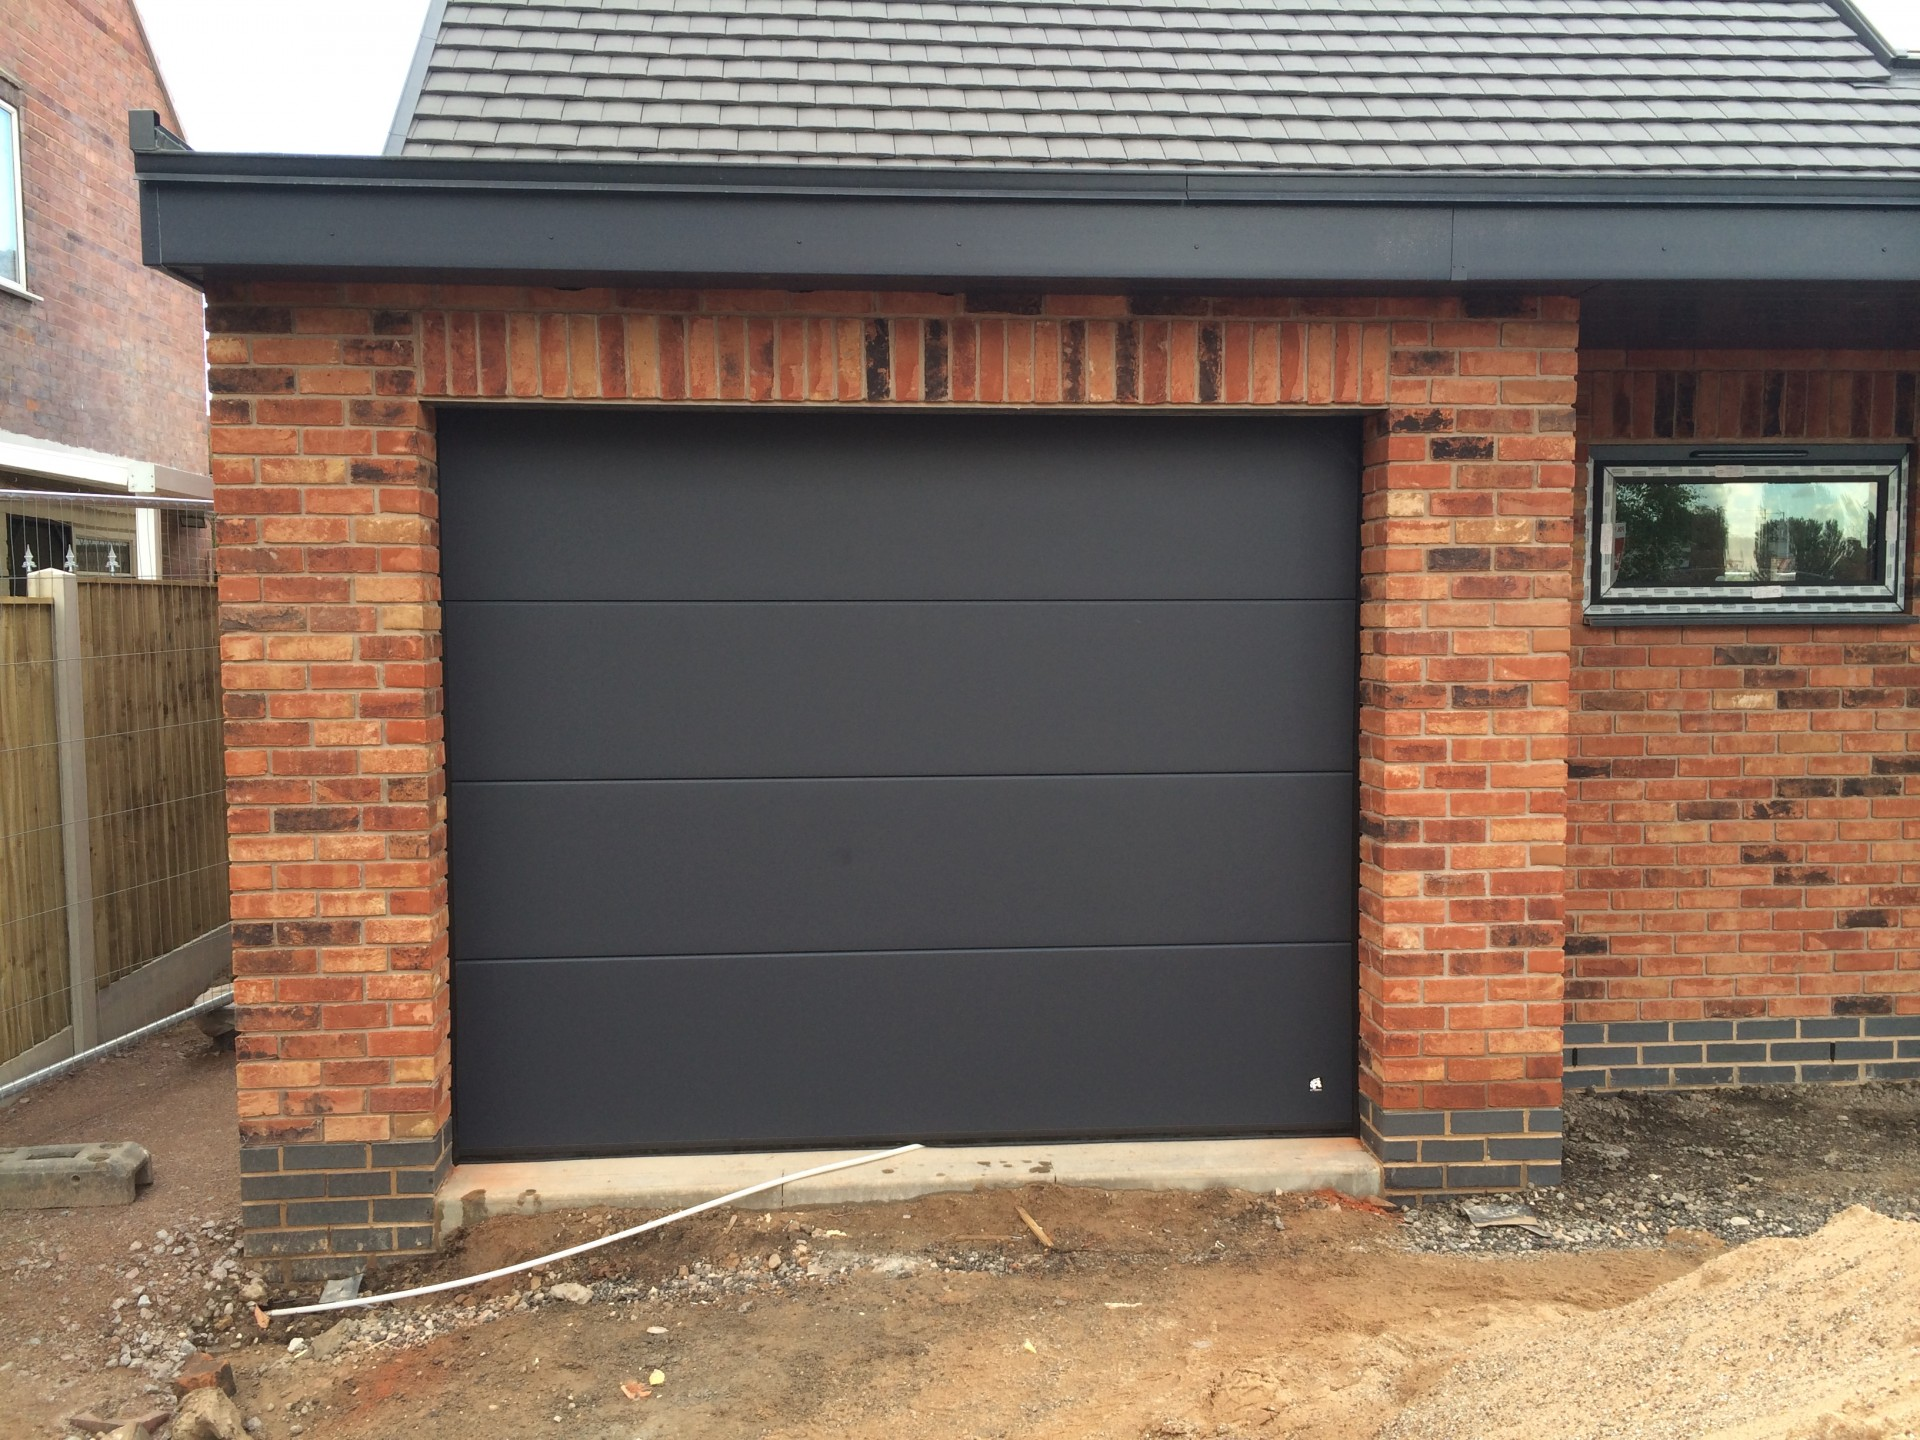 1440 #9C6C2F Byron Doors Ryterna Steel Sectional Garage Door In Smooth Anthracite  pic Sectional Steel Garage Doors 35911920